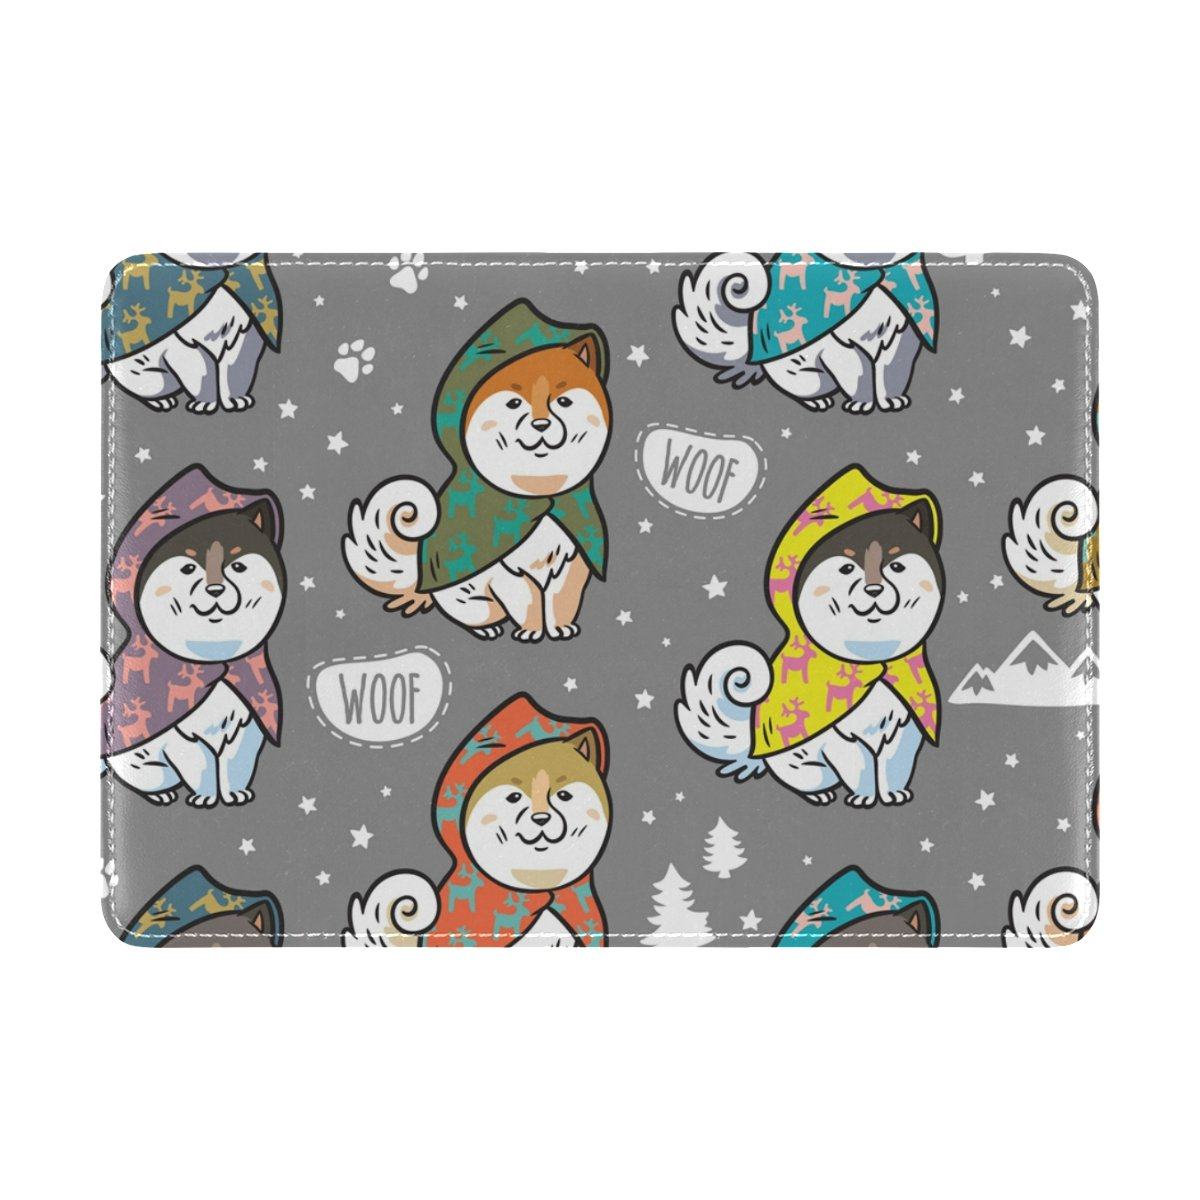 My Daily Husky Puppies Colorful Raincoats Leather Passport Holder Cover Case Protector